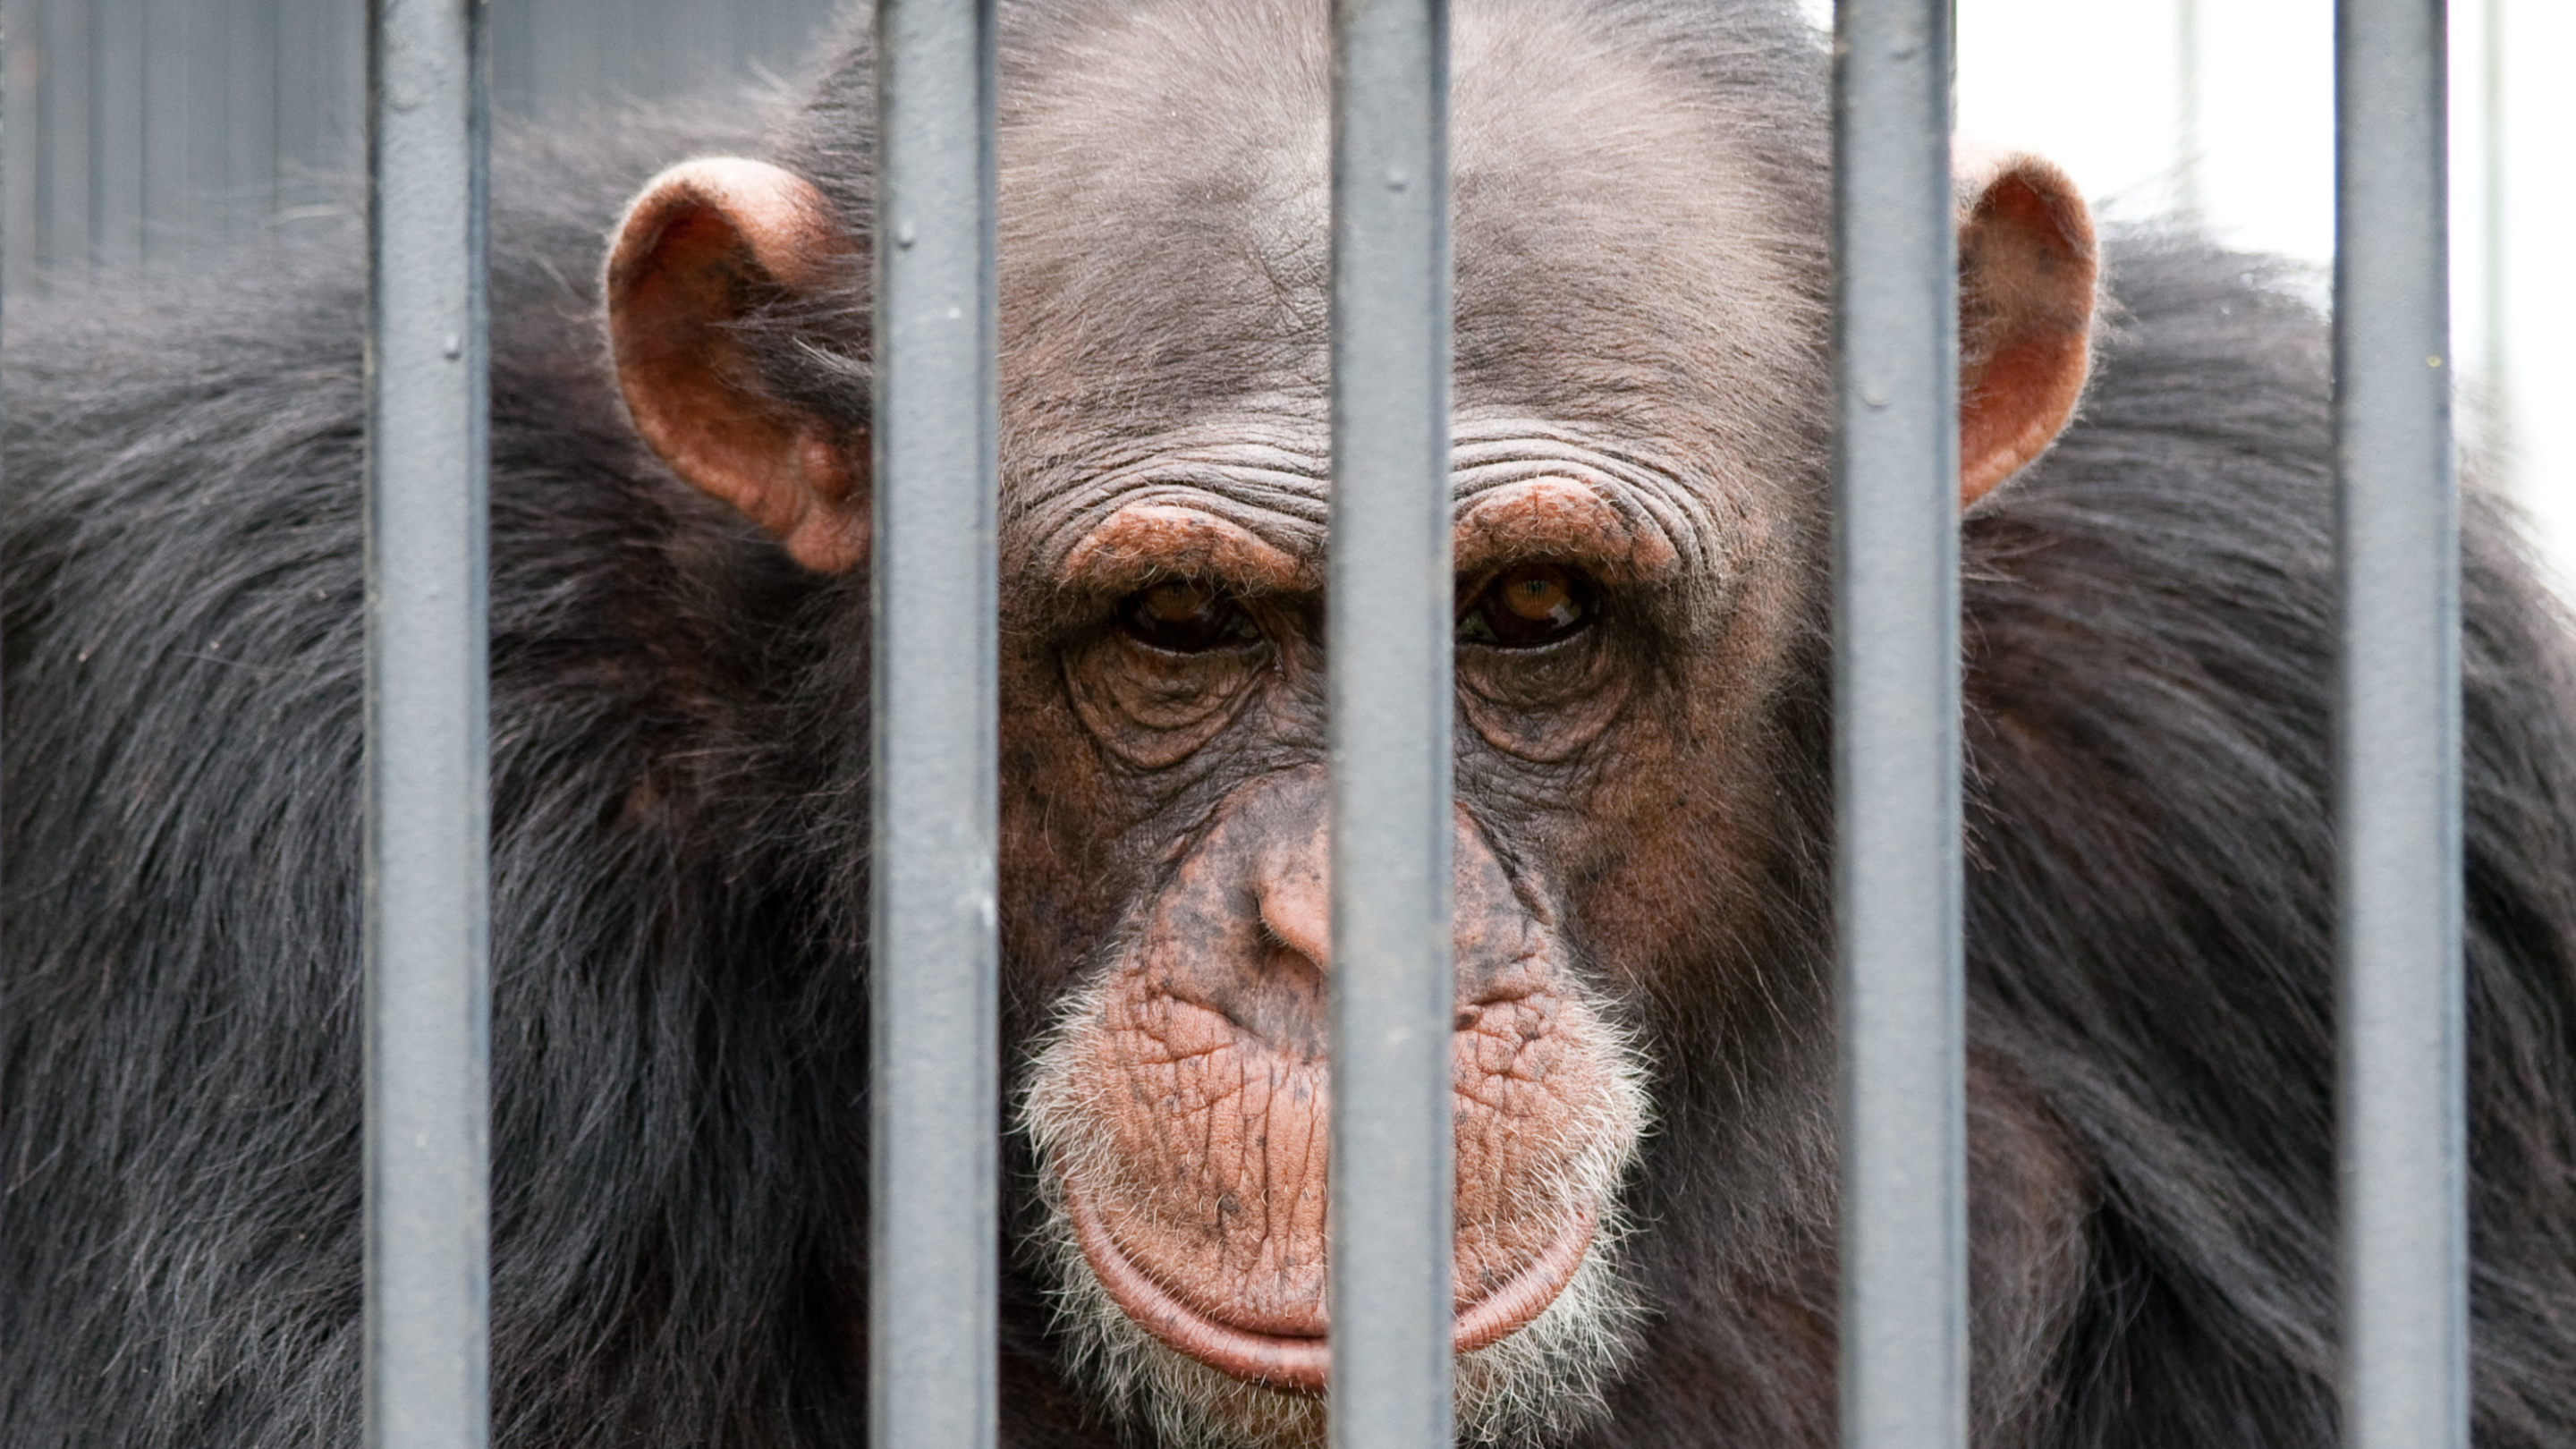 Photo of a chimpanzee looking down behind cage bars